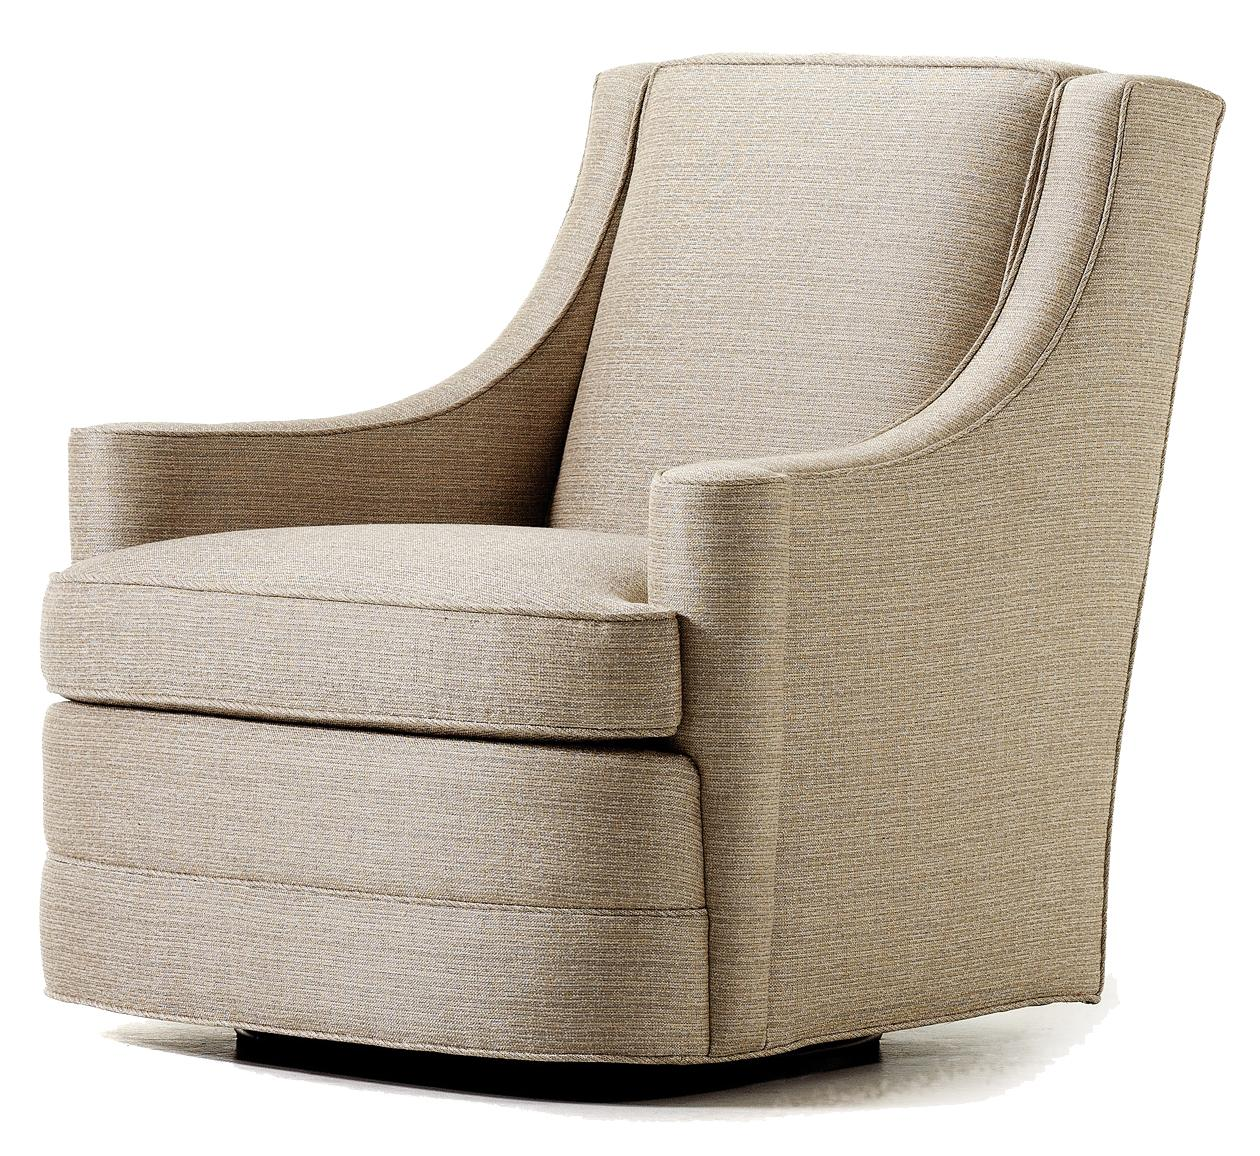 Jessica Charles Swivel Chairs Jessica Charles Fine Upholstered Accents Perry Upholstered